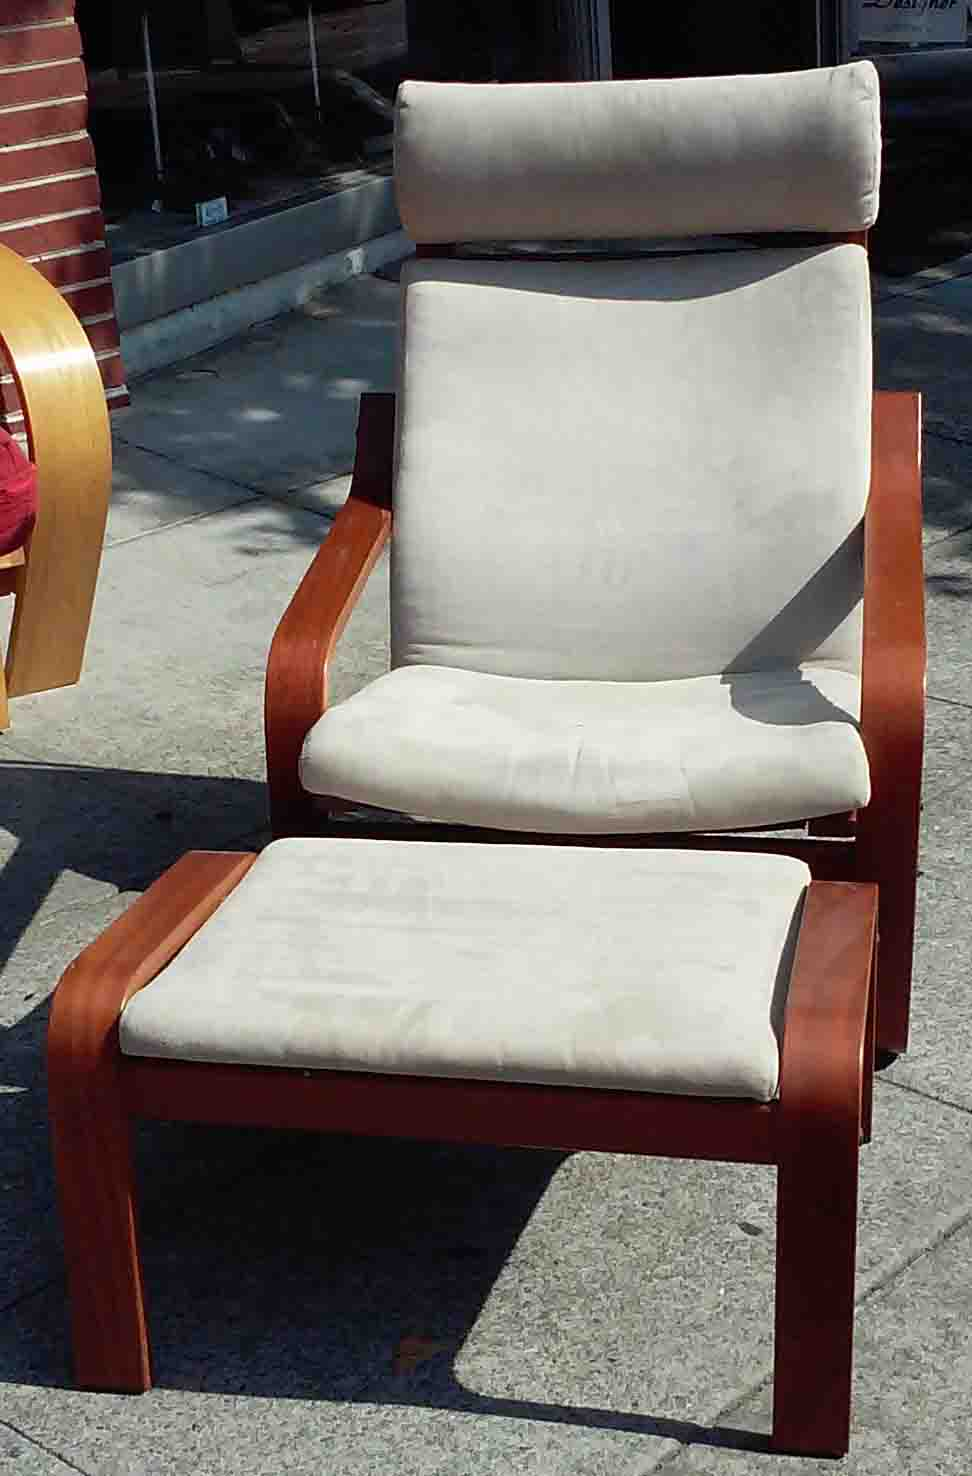 rocker chair sg kitchenette table and chairs uhuru furniture & collectibles: sold poang with ottoman - $70